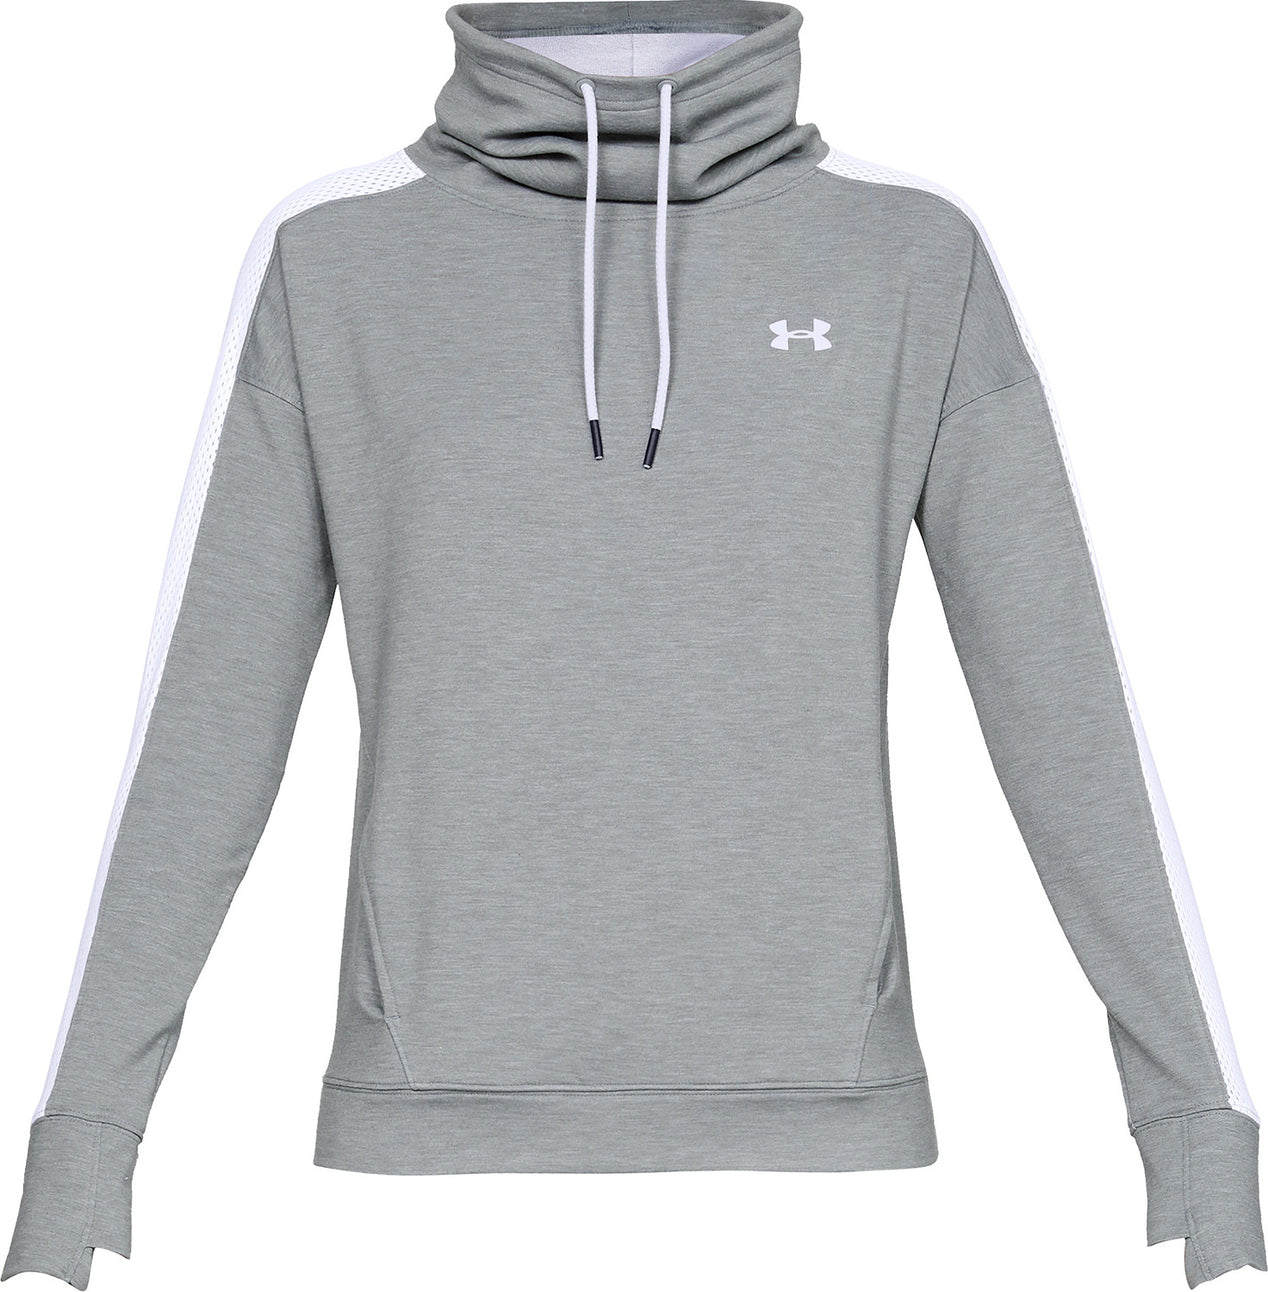 free shipping d08ba 758ea Under Armour Women s Featherweight Fleece Funnel Neck